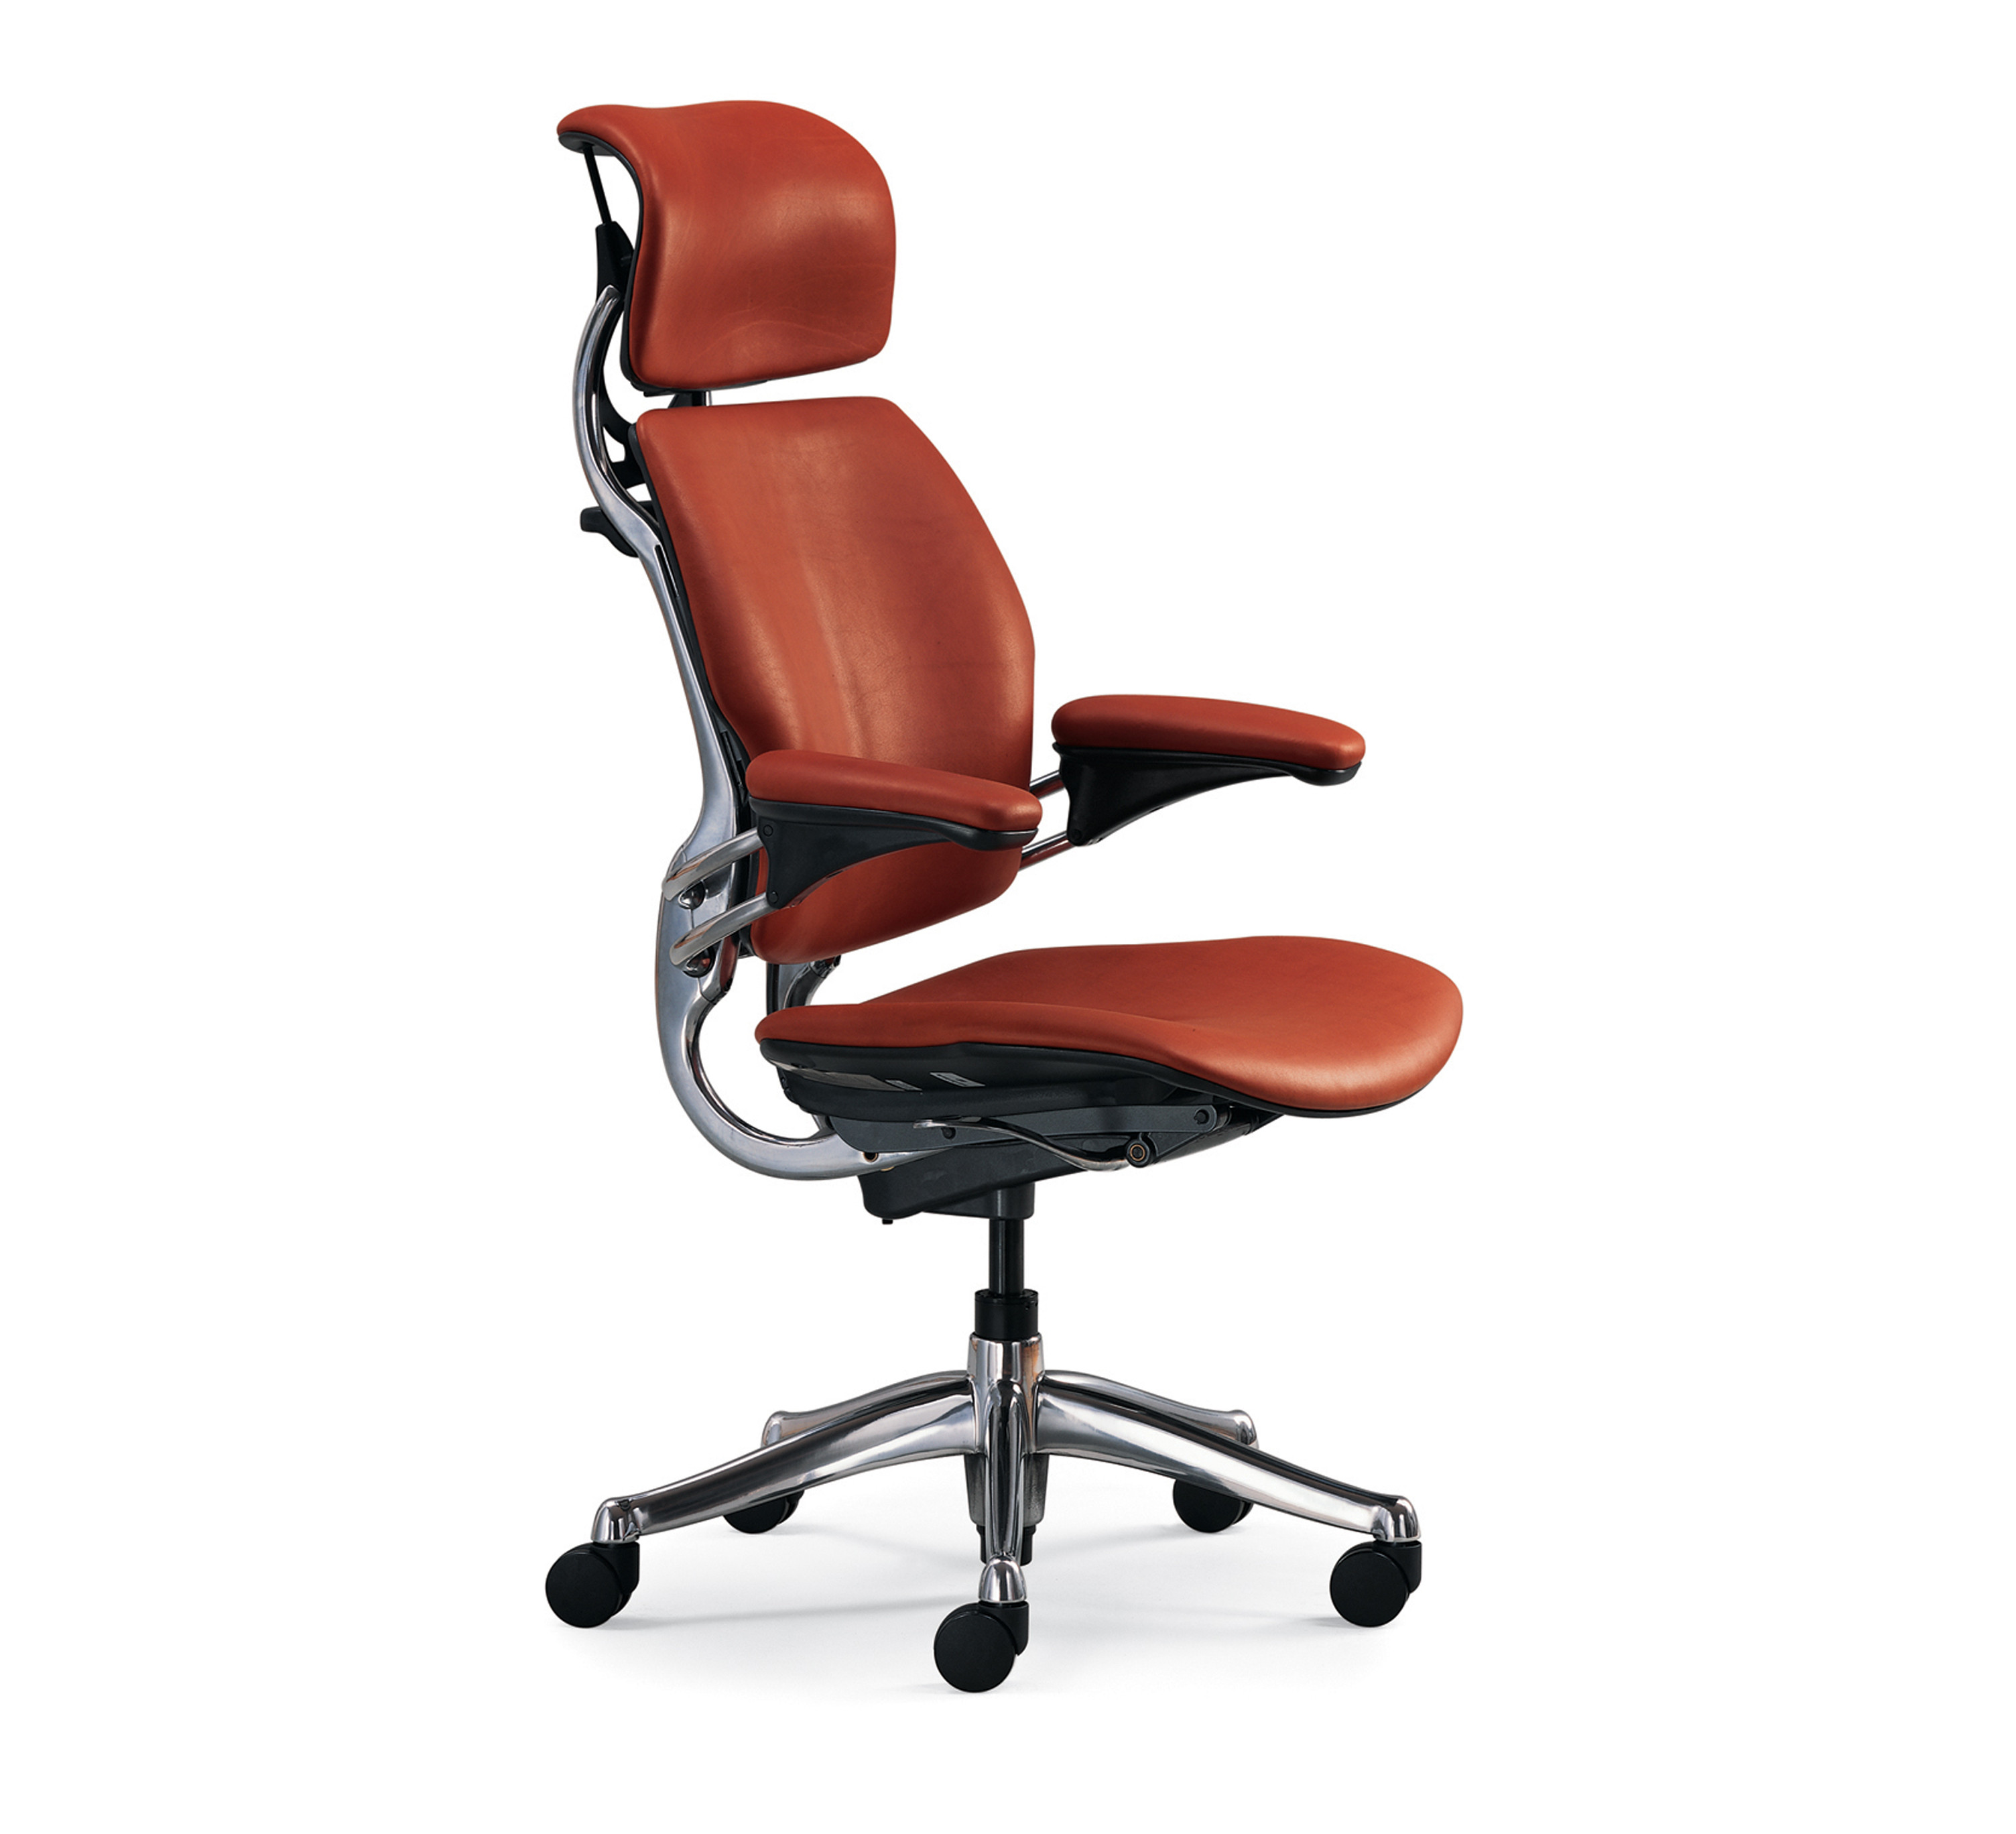 Freedom Furniture Head Office Freedom Task Chair Niels Diffrient Office Chair Apres Furniture